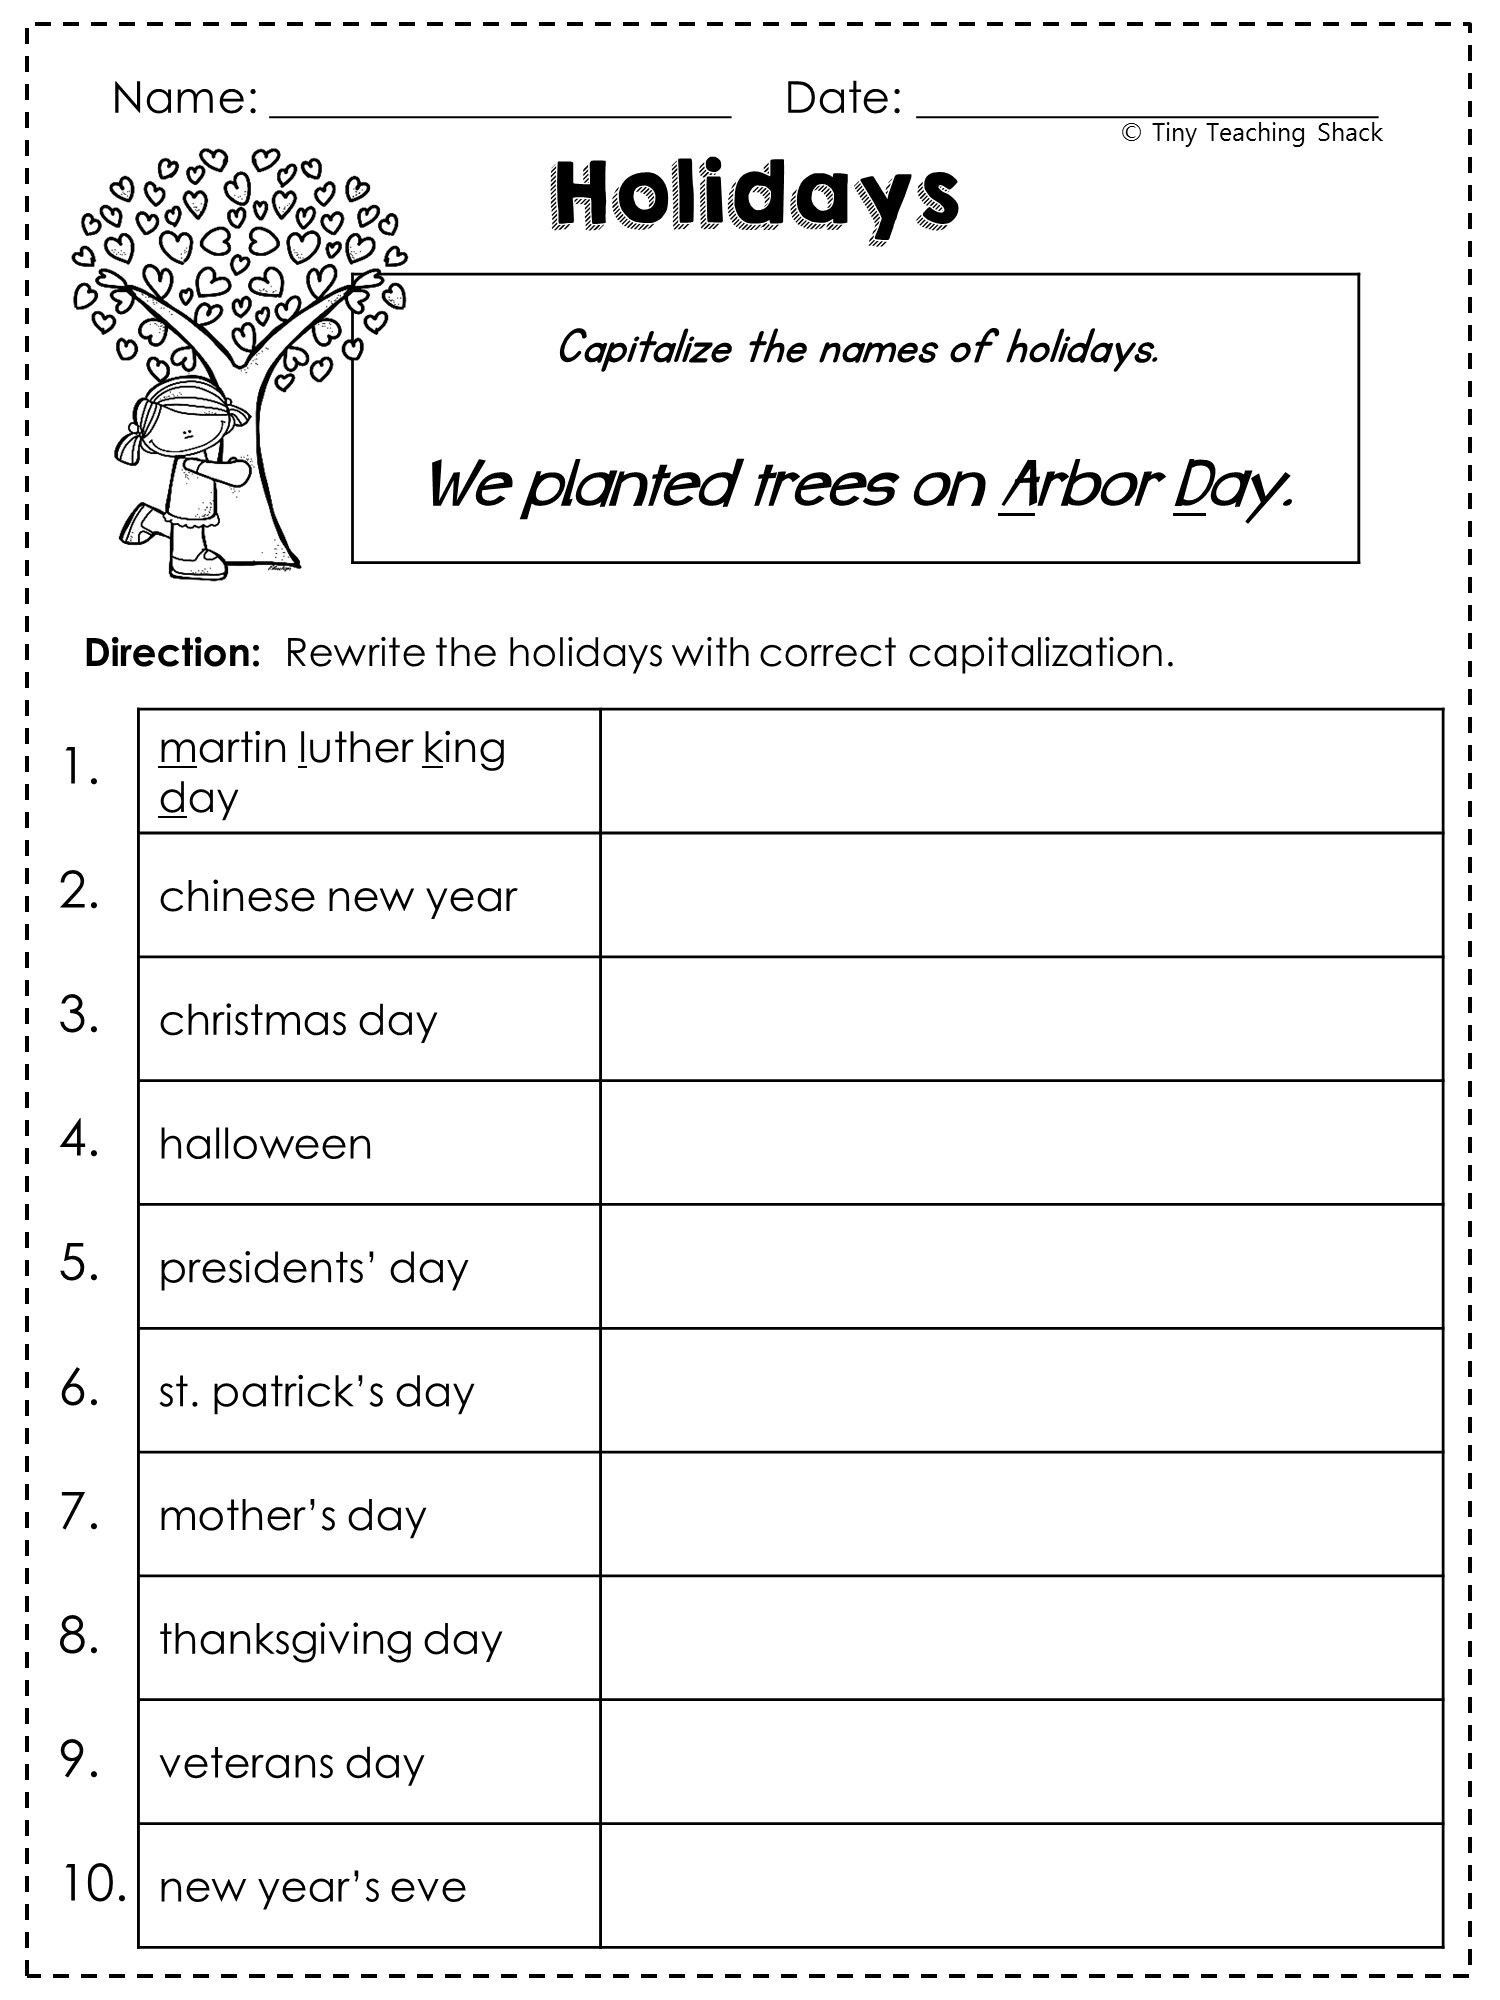 Spelling Worksheets 2nd Graders 2nd Grade Language Arts And Grammar Practice Sh In 2021 Third Grade Grammar Worksheets Capitalization Worksheets Proper Nouns Worksheet